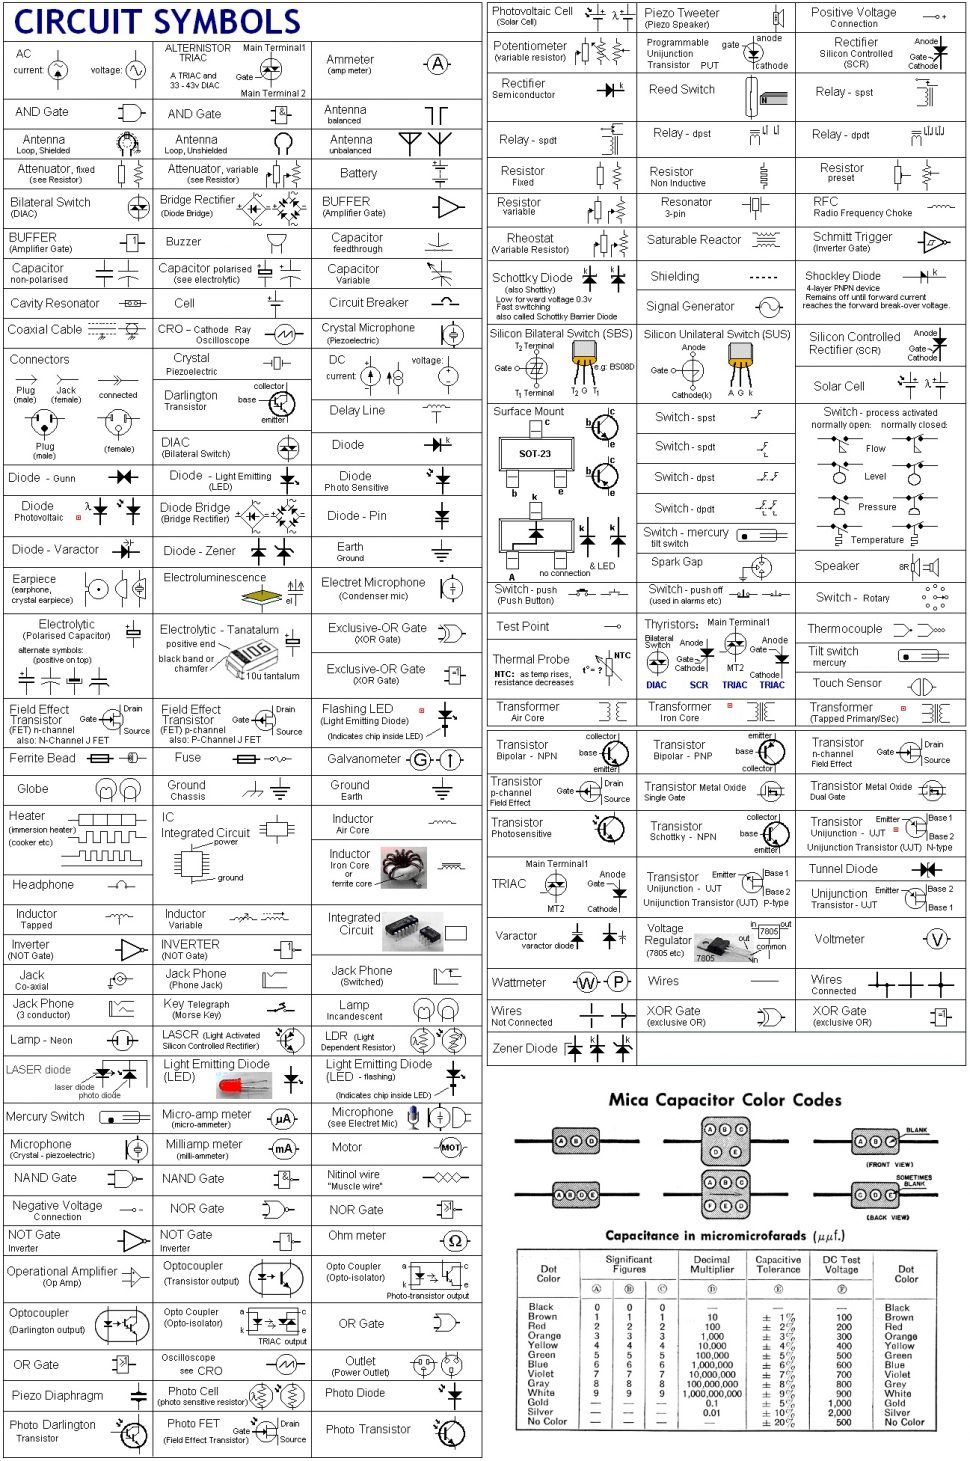 component wiring schematic symbols and meanings electrical download rh pinterest com